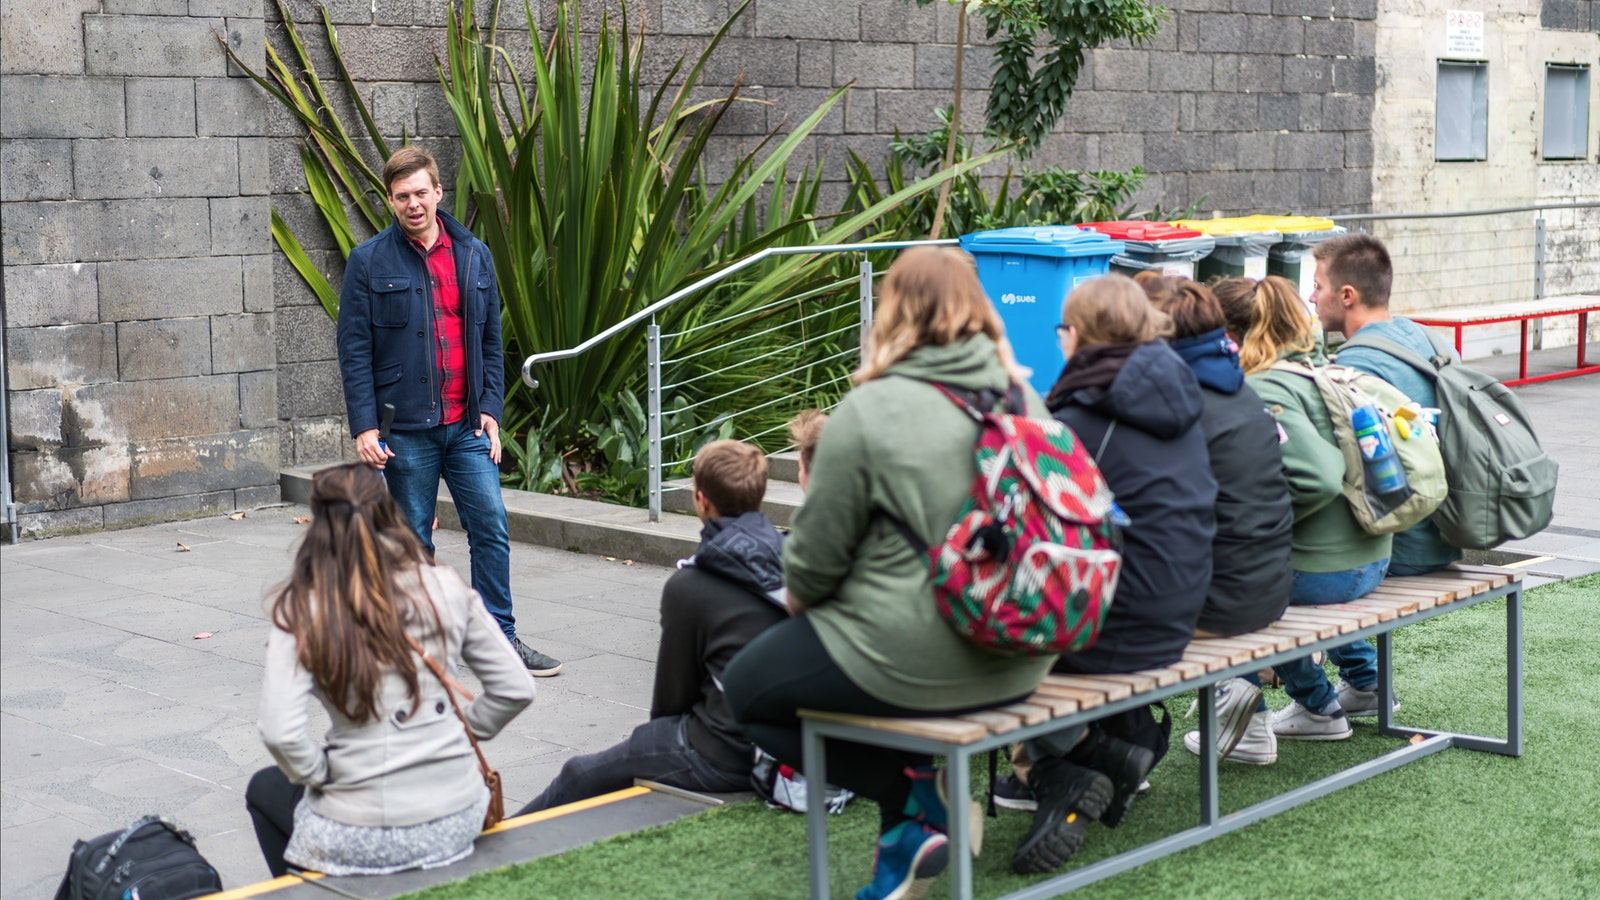 Telling the story of Ned Kelly at the Old Melbourne Gaol during the free tour